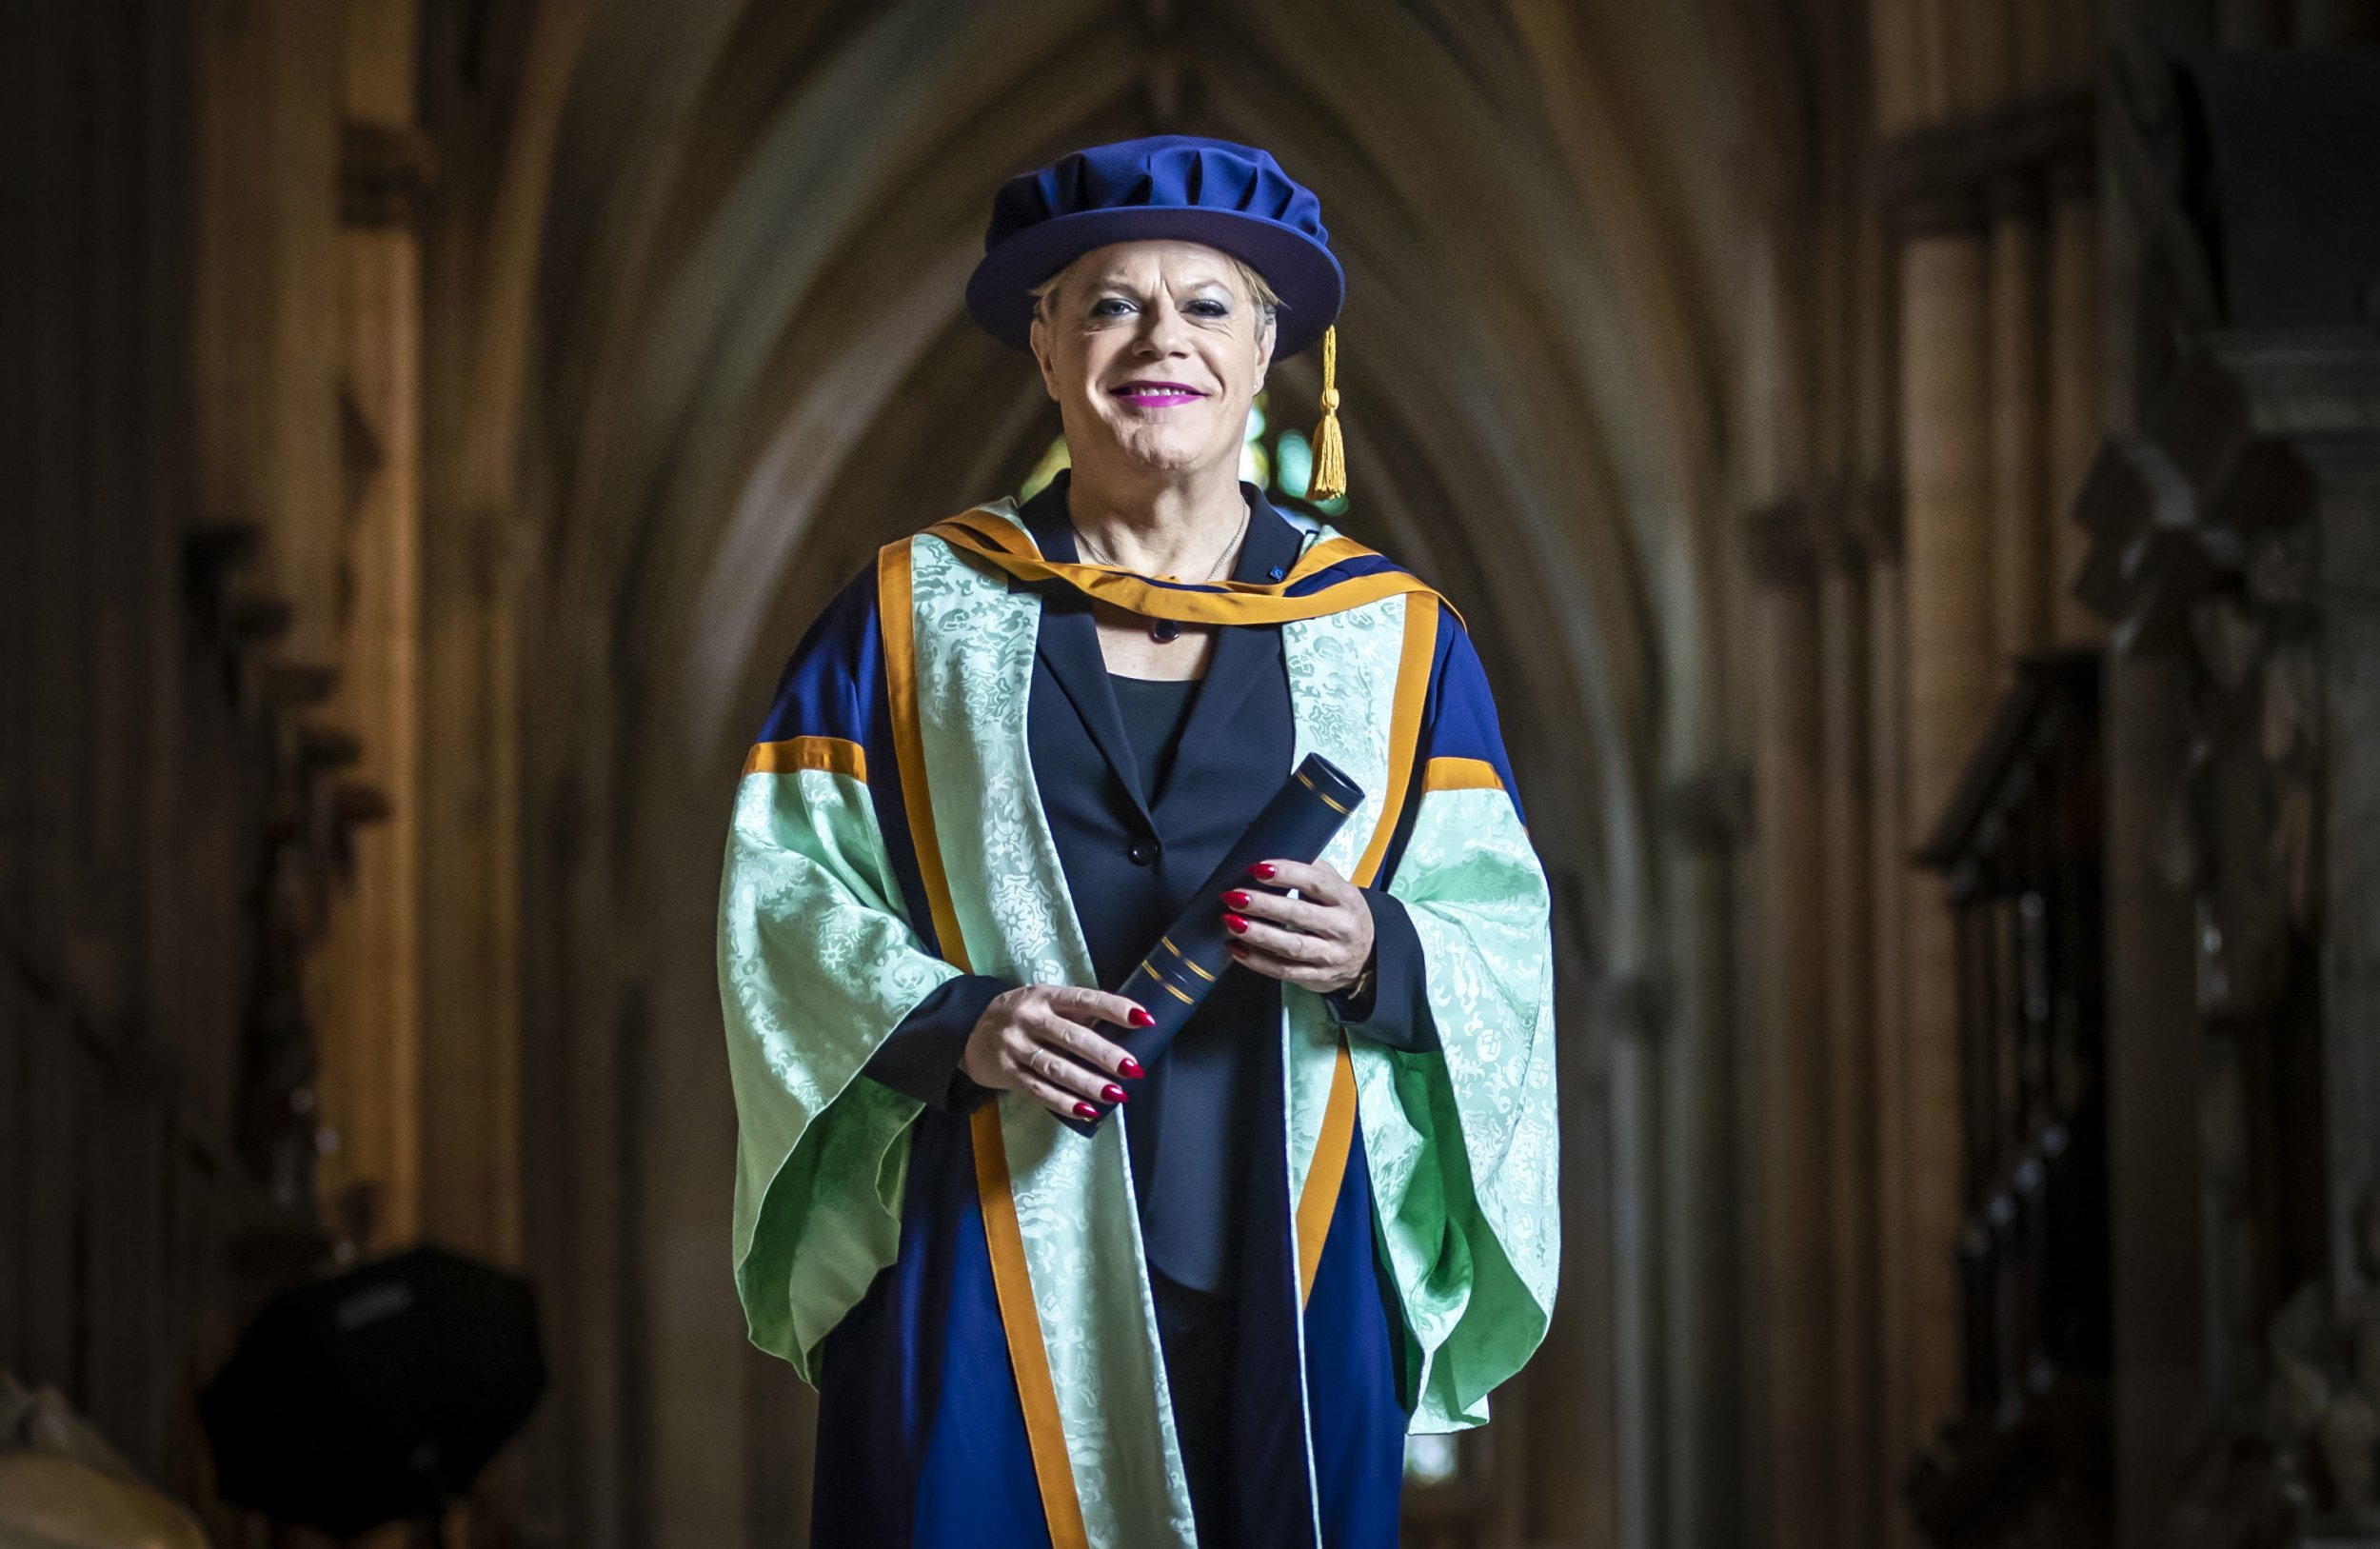 Eddie Izzard with his honorary degree from York St John University ahead of a graduation award ceremony at York Minster. PRESS ASSOCIATION Photo. Picture date: Tuesday November 20, 2018. Eddie Izzard has been awarded an honorary degree for his outstanding achievements as a comedian, actor, writer, fundraiser and political activist by York St John University. Photo credit should read: Danny Lawson/PA Wire